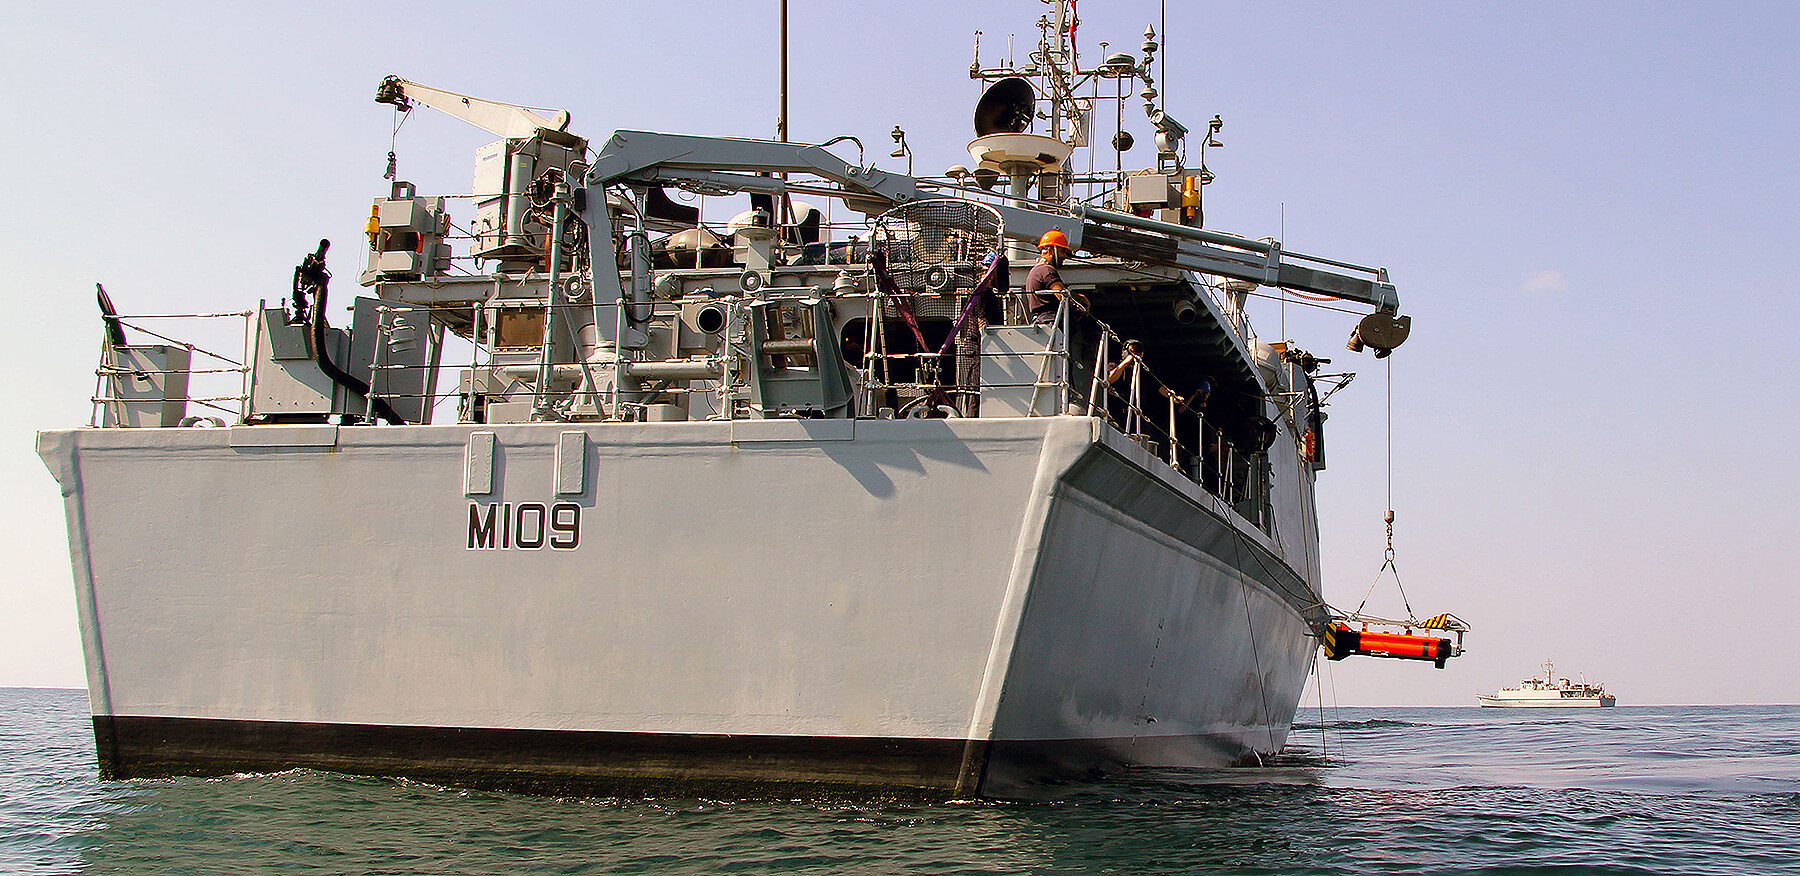 The future of Royal Navy mine hunting | Save the Royal Navy